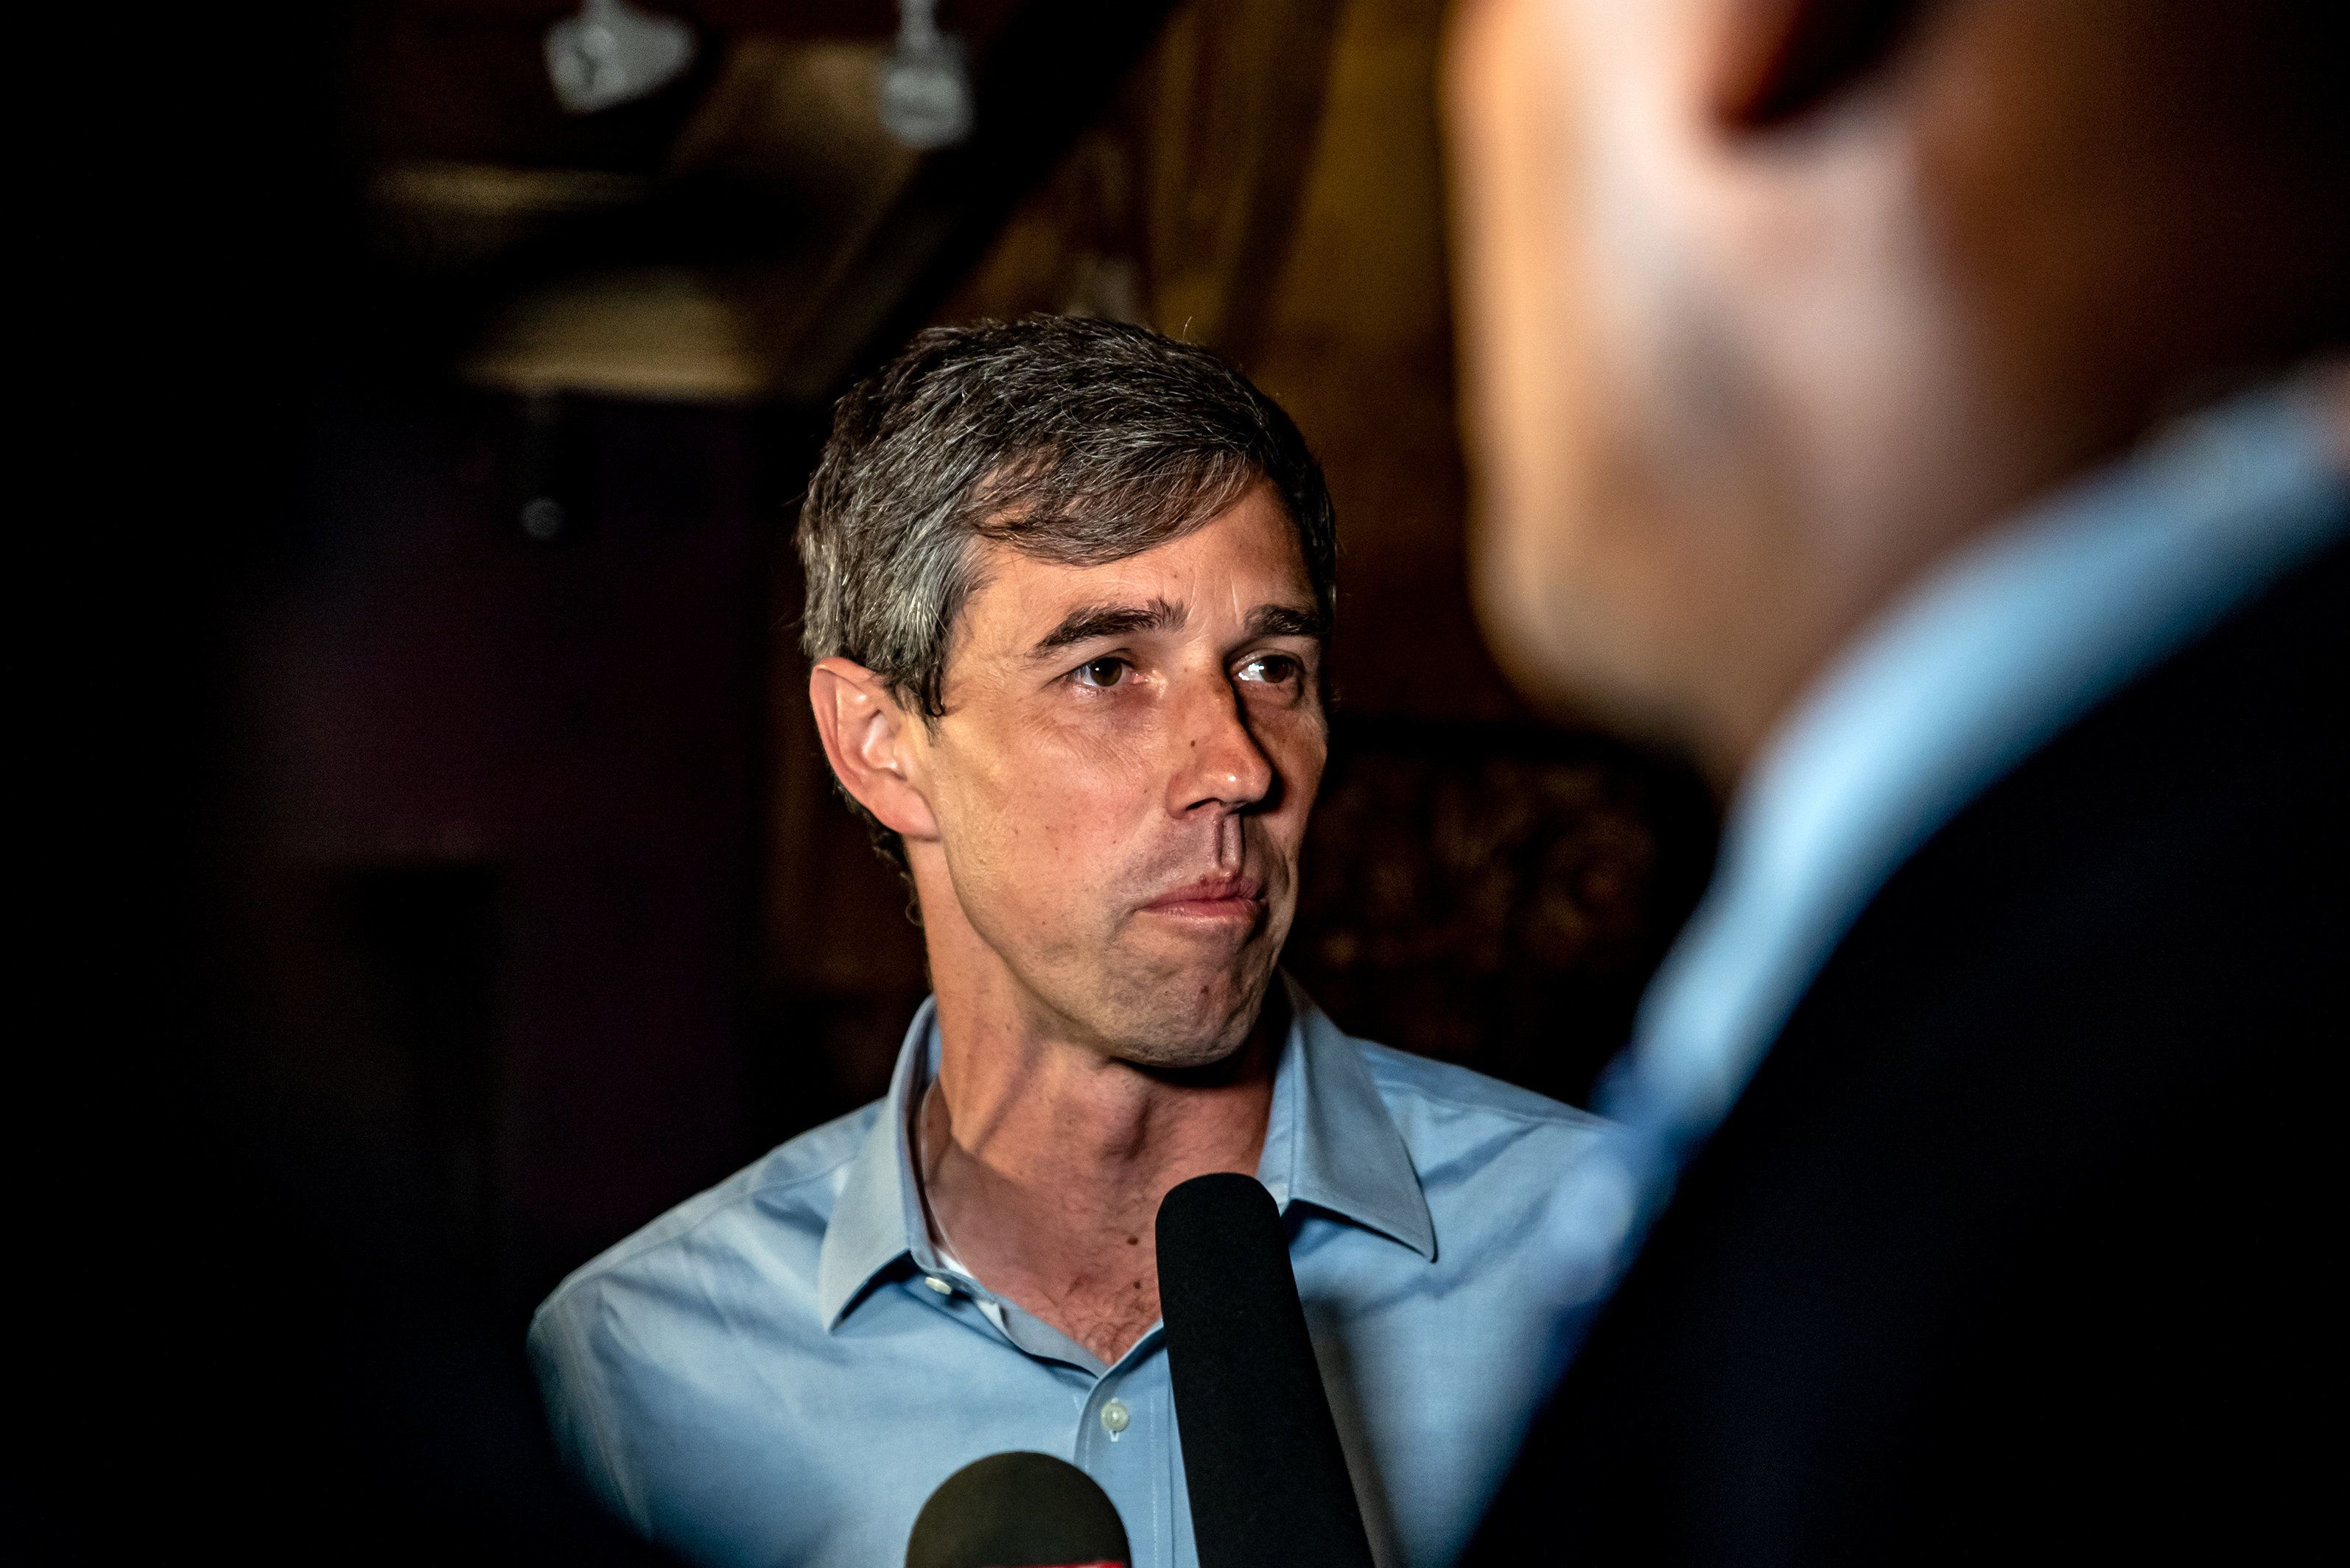 Beto O'Rourke, Democratic candidate for the U.S. Senate, speaks to a member of the media before a campaign rally in Houston, Texas, U.S., on Monday, Nov. 5, 2018. Surging turnout has both Republicans and Democrats proclaiming they stand to benefit, as polls show tight races up and down the ballot that will determine control of Congress, state houses and governors mansions nationwide. Photographer: Sergio Flores/Bloomberg via Getty Images